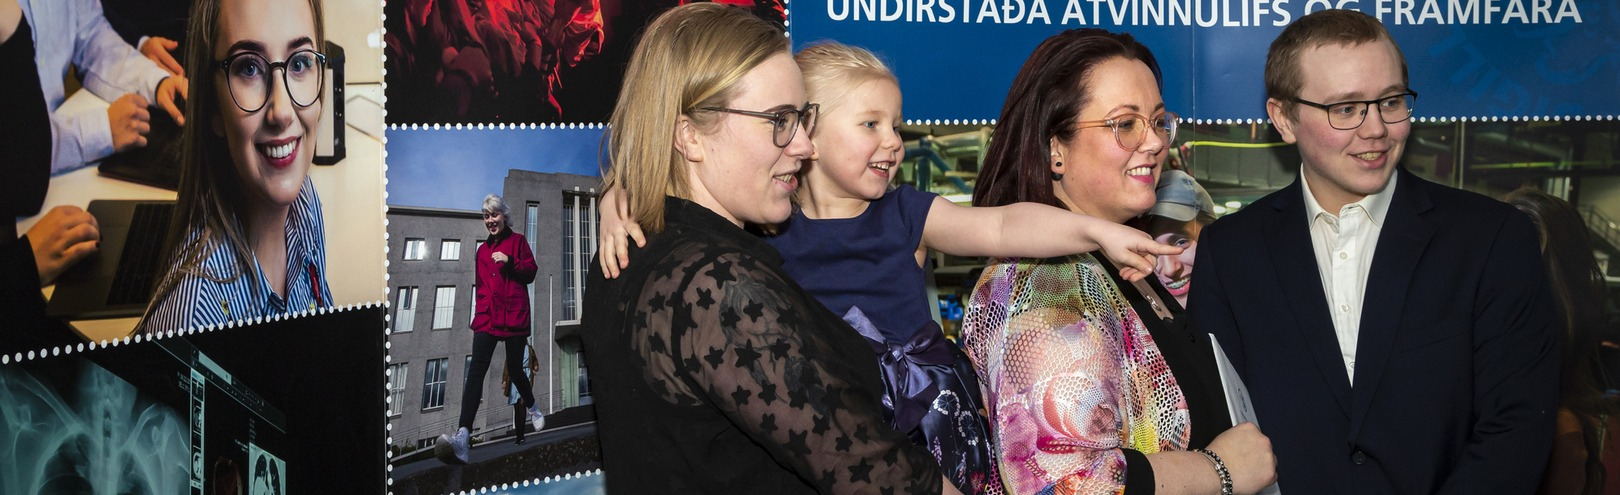 Almost 500 candidates graduate from the University of Iceland - Available at University of Iceland